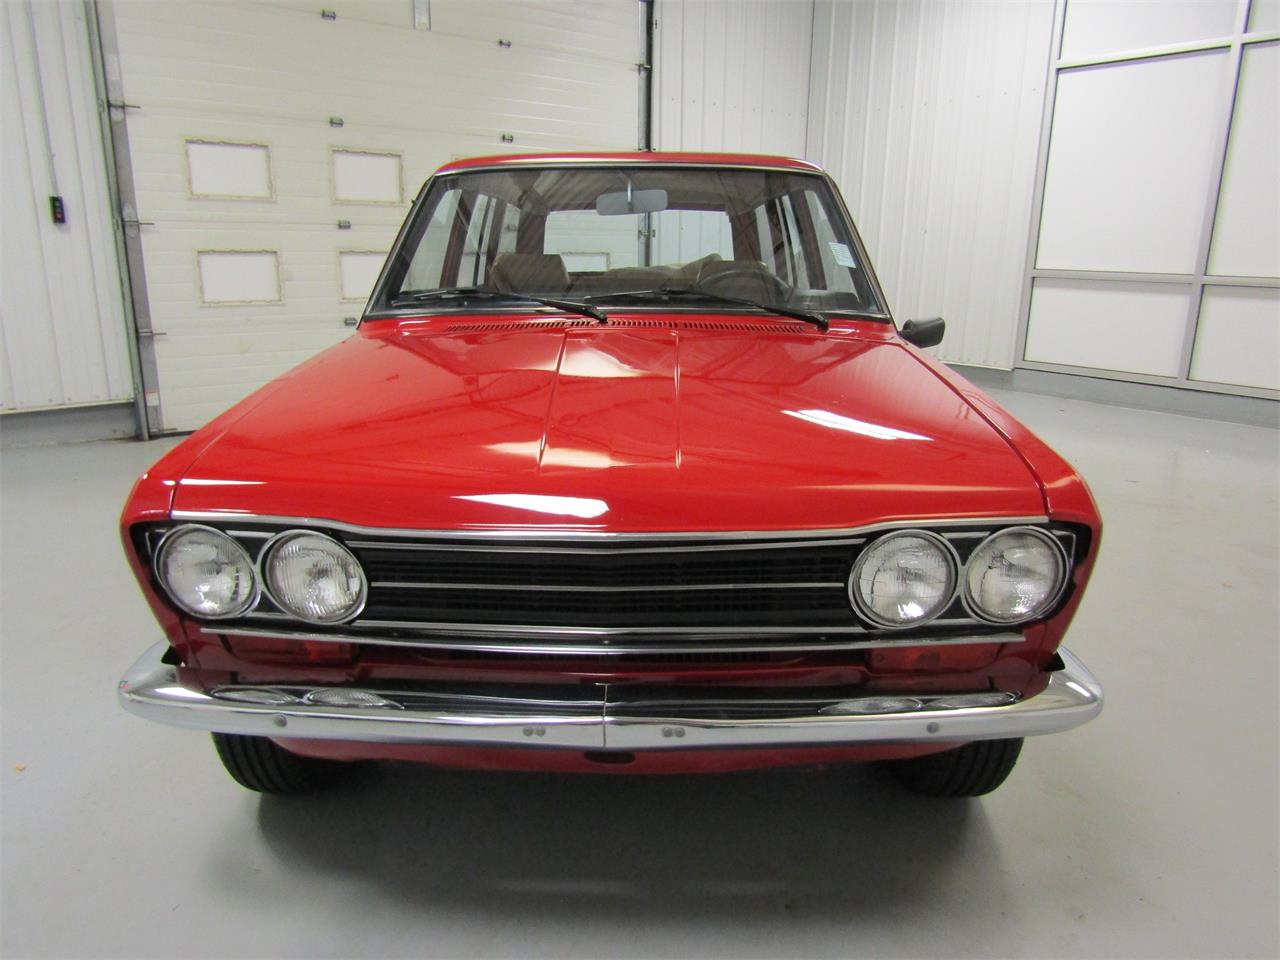 Large Picture of Classic '70 510 - $19,900.00 Offered by Duncan Imports & Classic Cars - O676